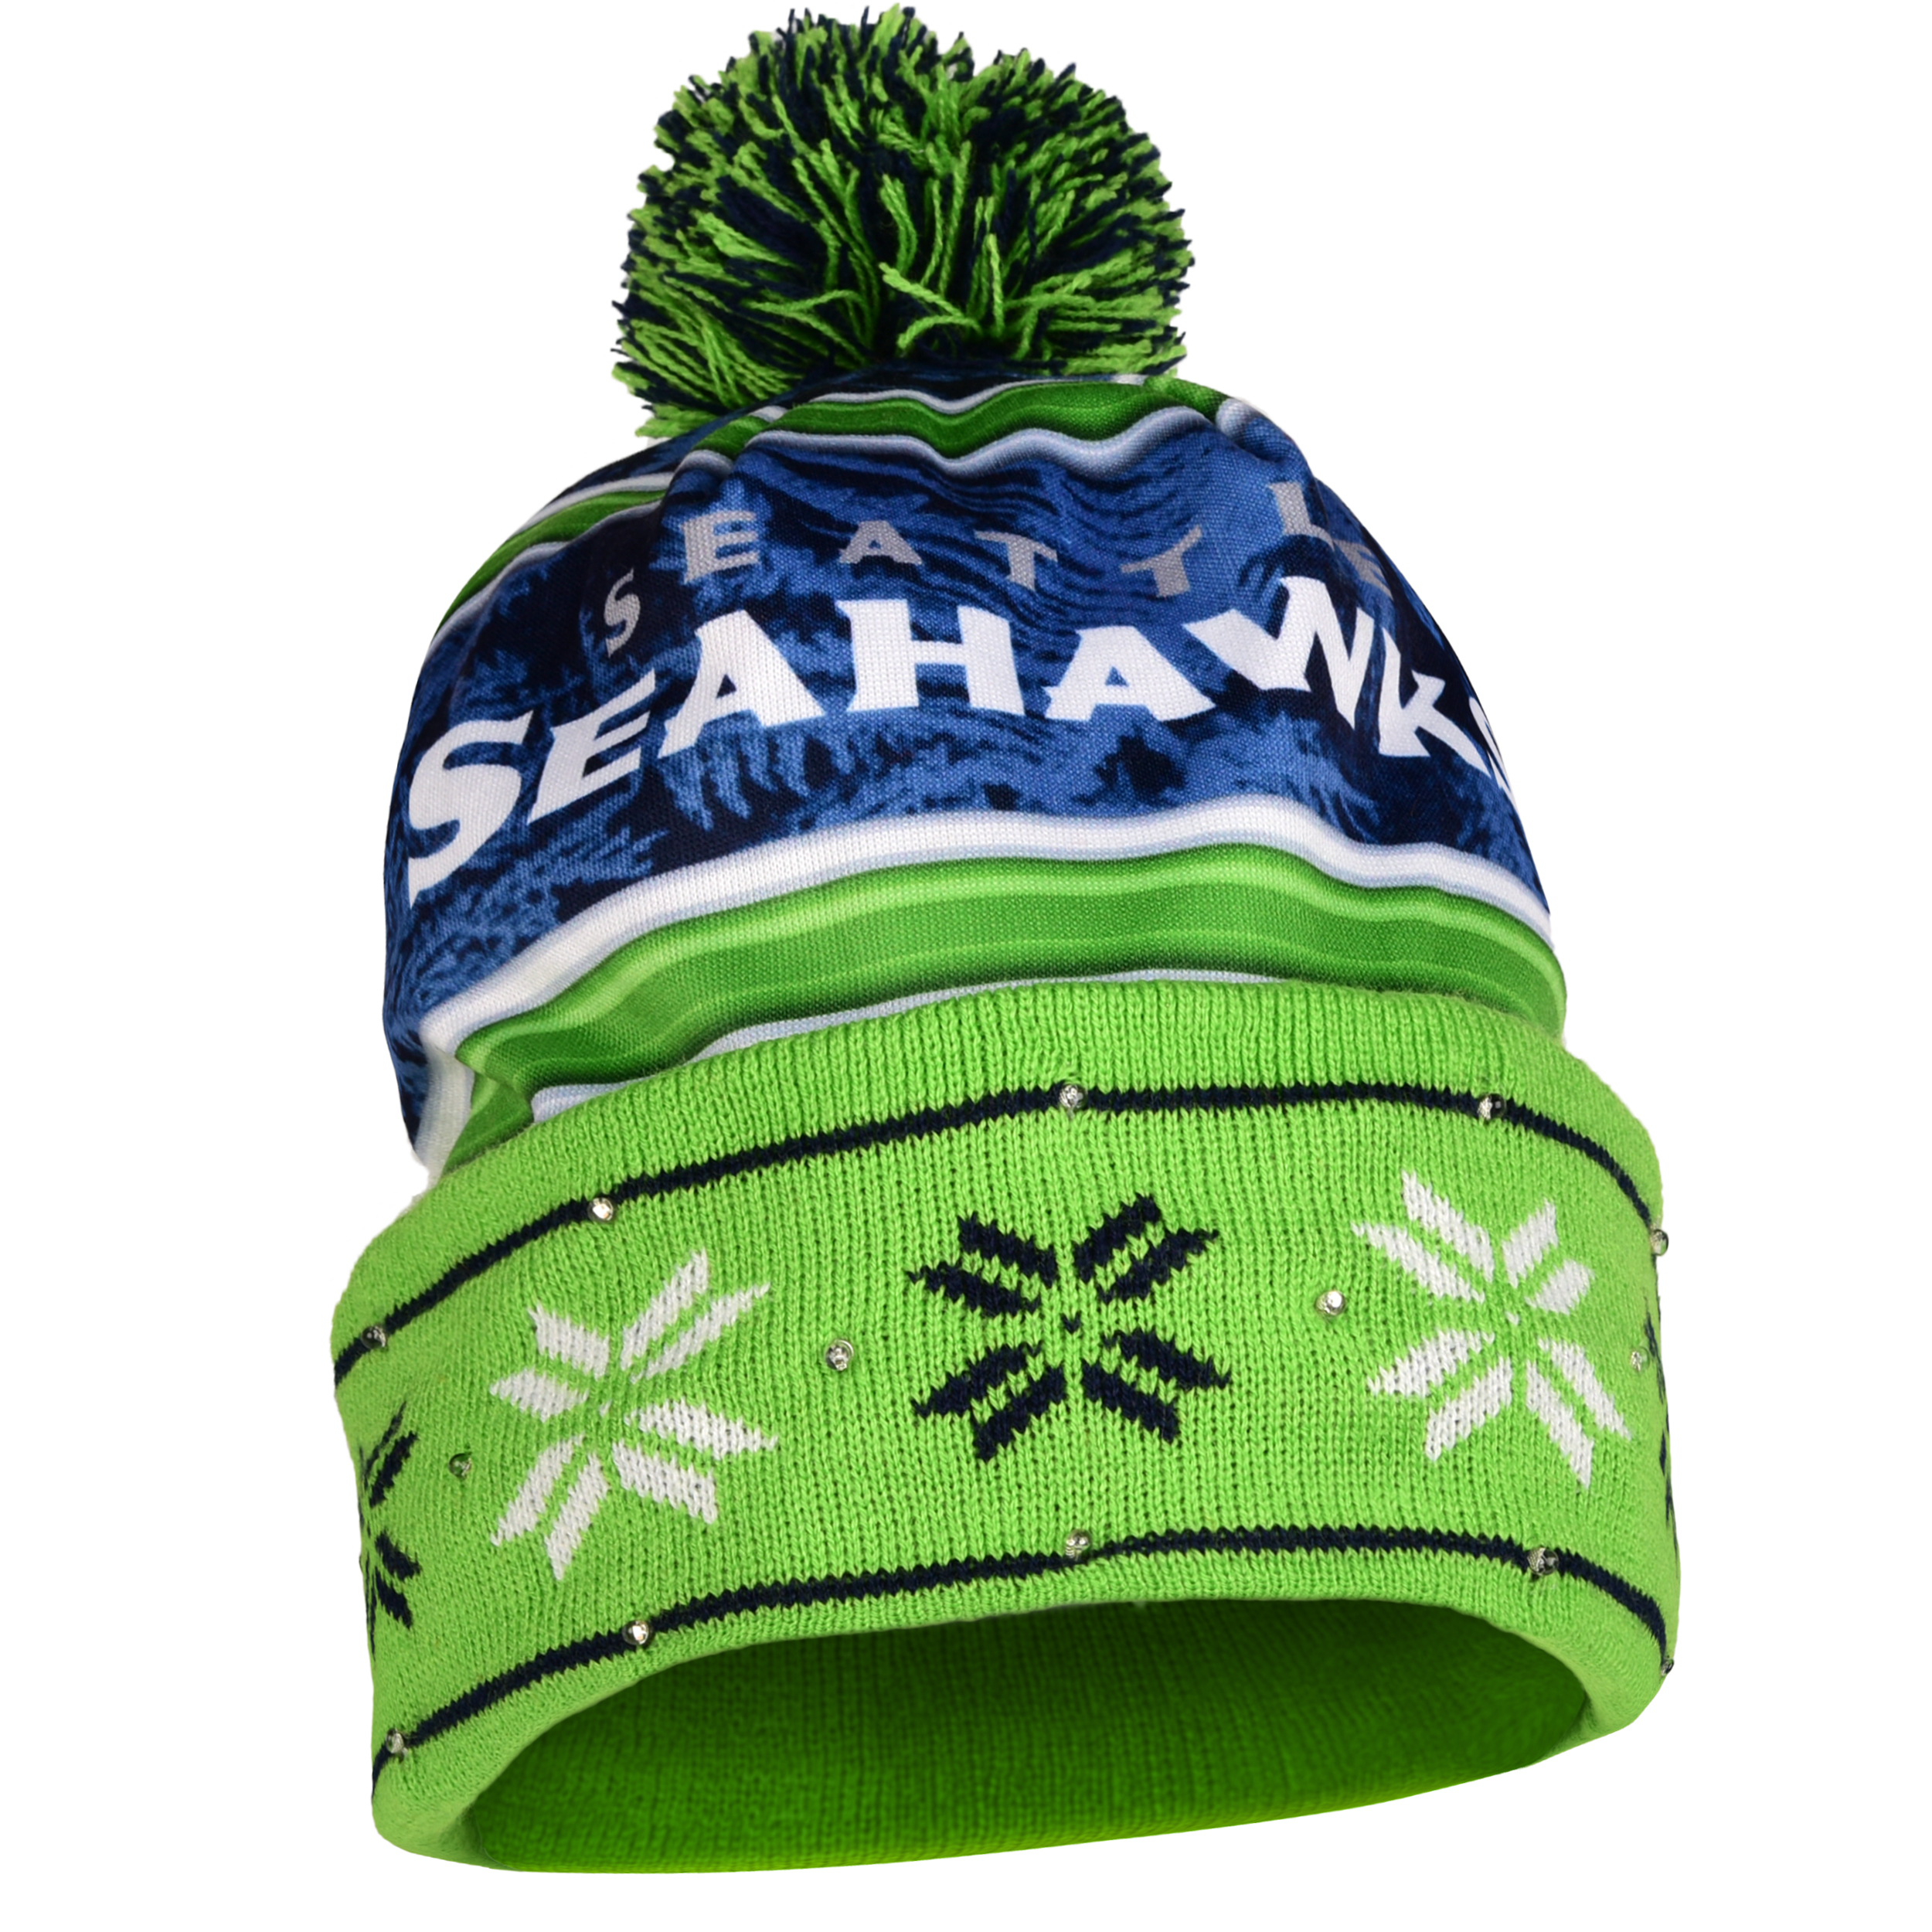 Seattle Seahawks Official NFL Team Beanie Stocking Stretch Knit Sock Hat by Forever Collectibles 680369